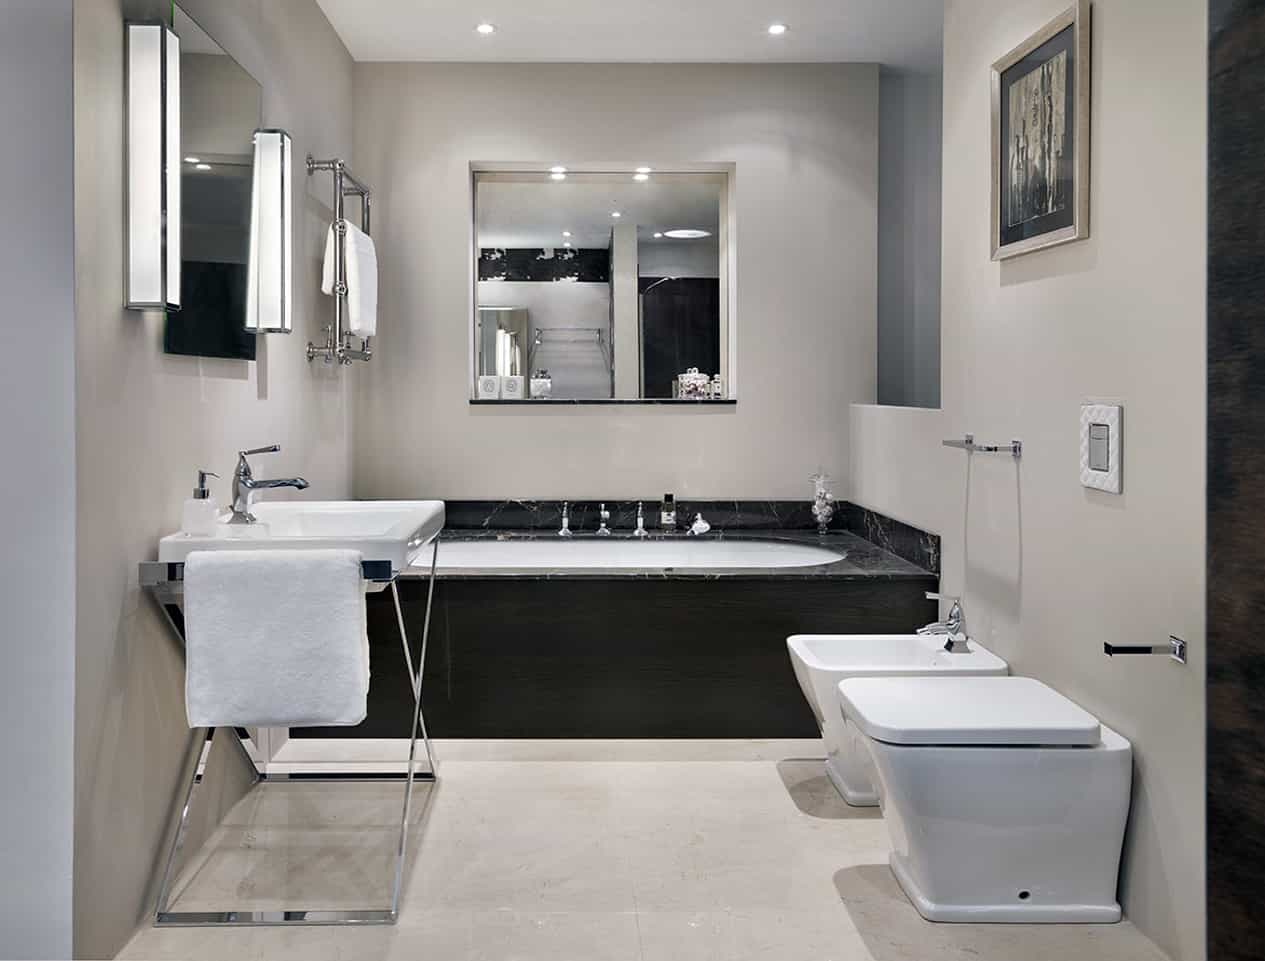 Bathroom Showrooms Finest Kitchen And Bath Showrooms Near Me San Francisco C